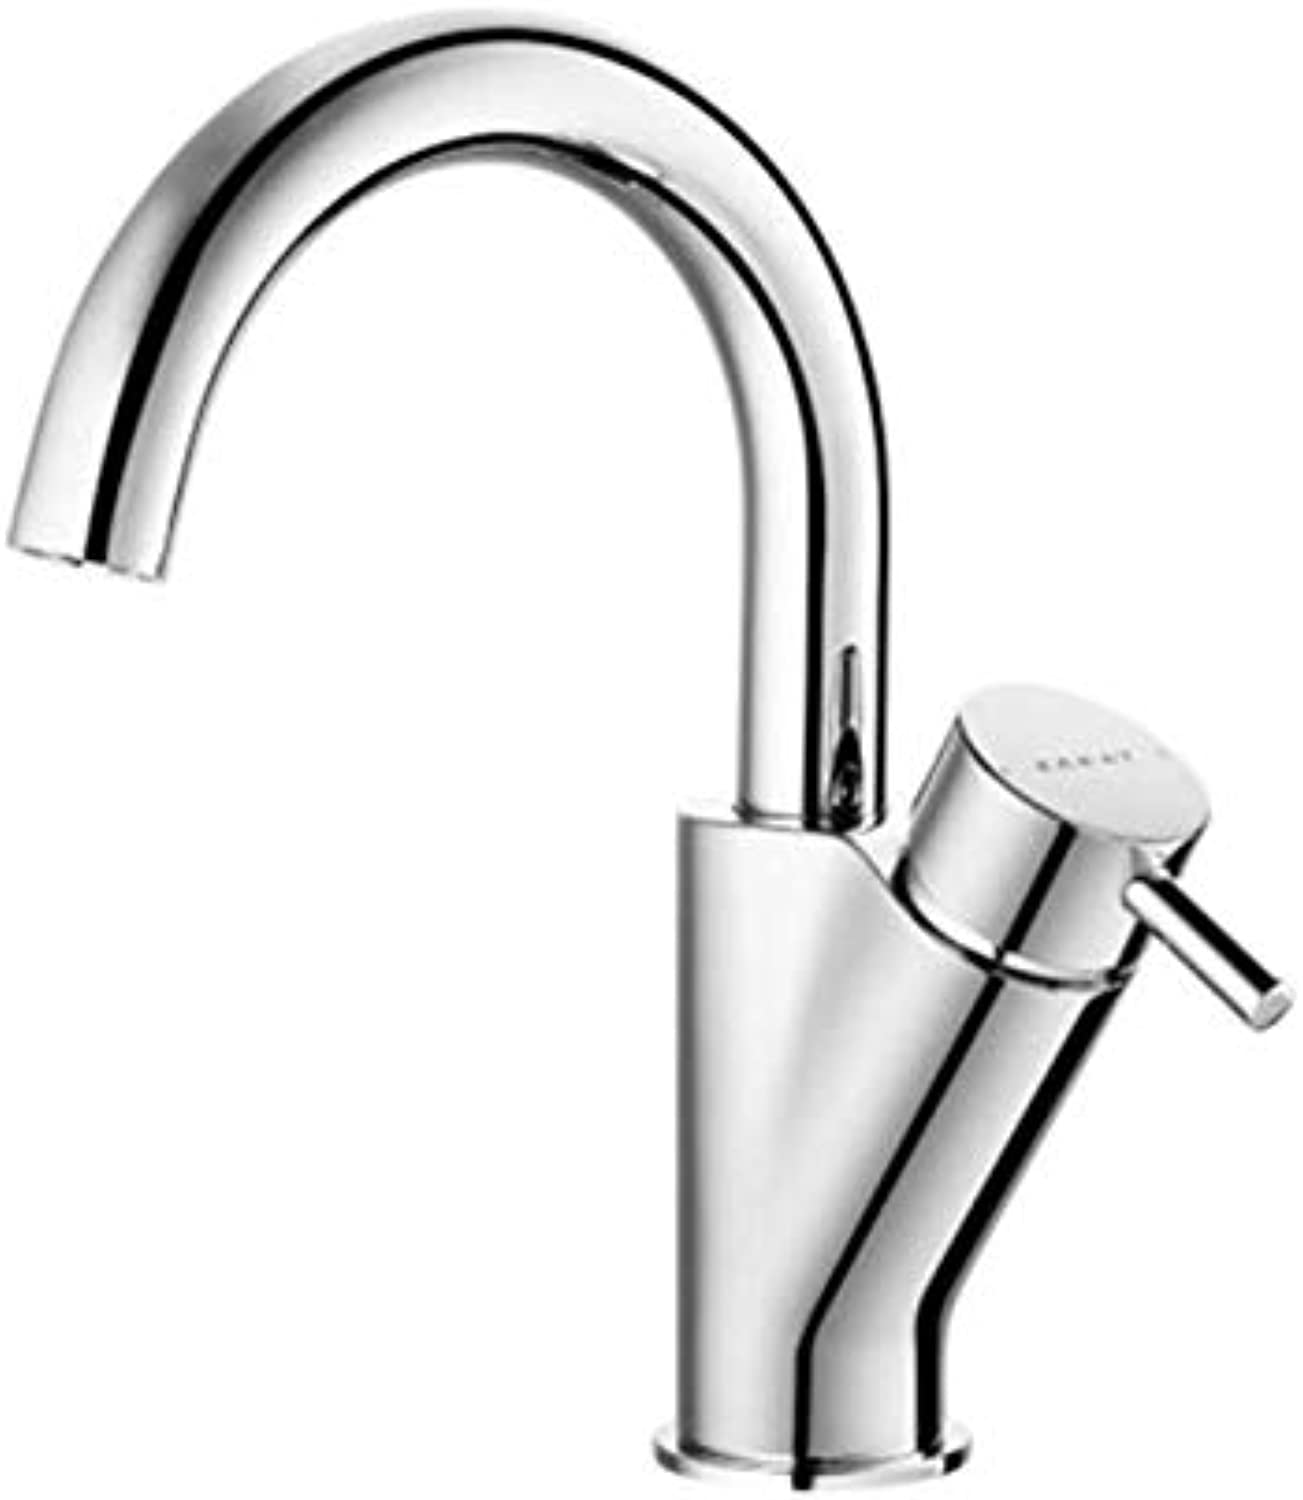 CZOOR Single handle single hole copper hot and cold universal 306 redating wash basin basin faucet